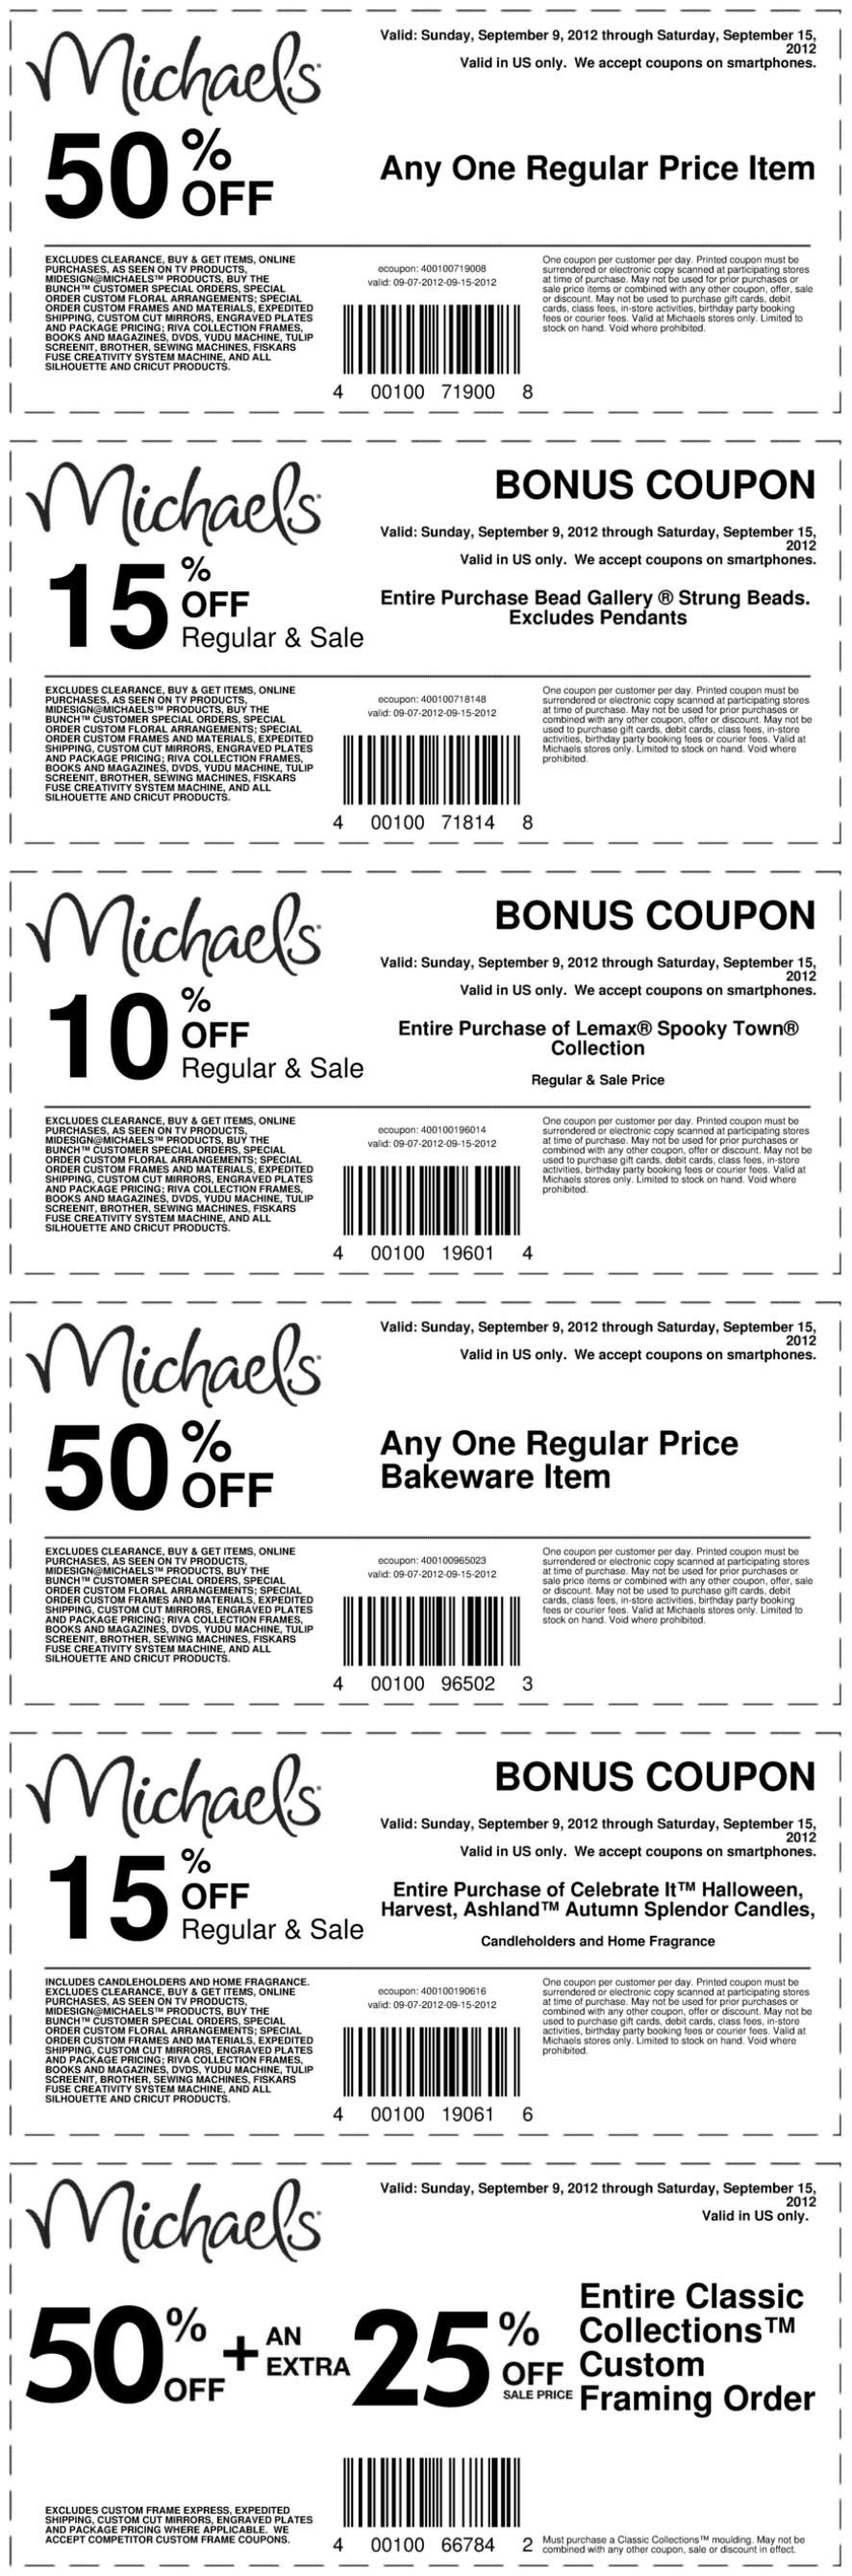 Michaels coupon money saving mom 174 - 50 Off A Single Item And More At Michaels Coupon Via The Coupons App